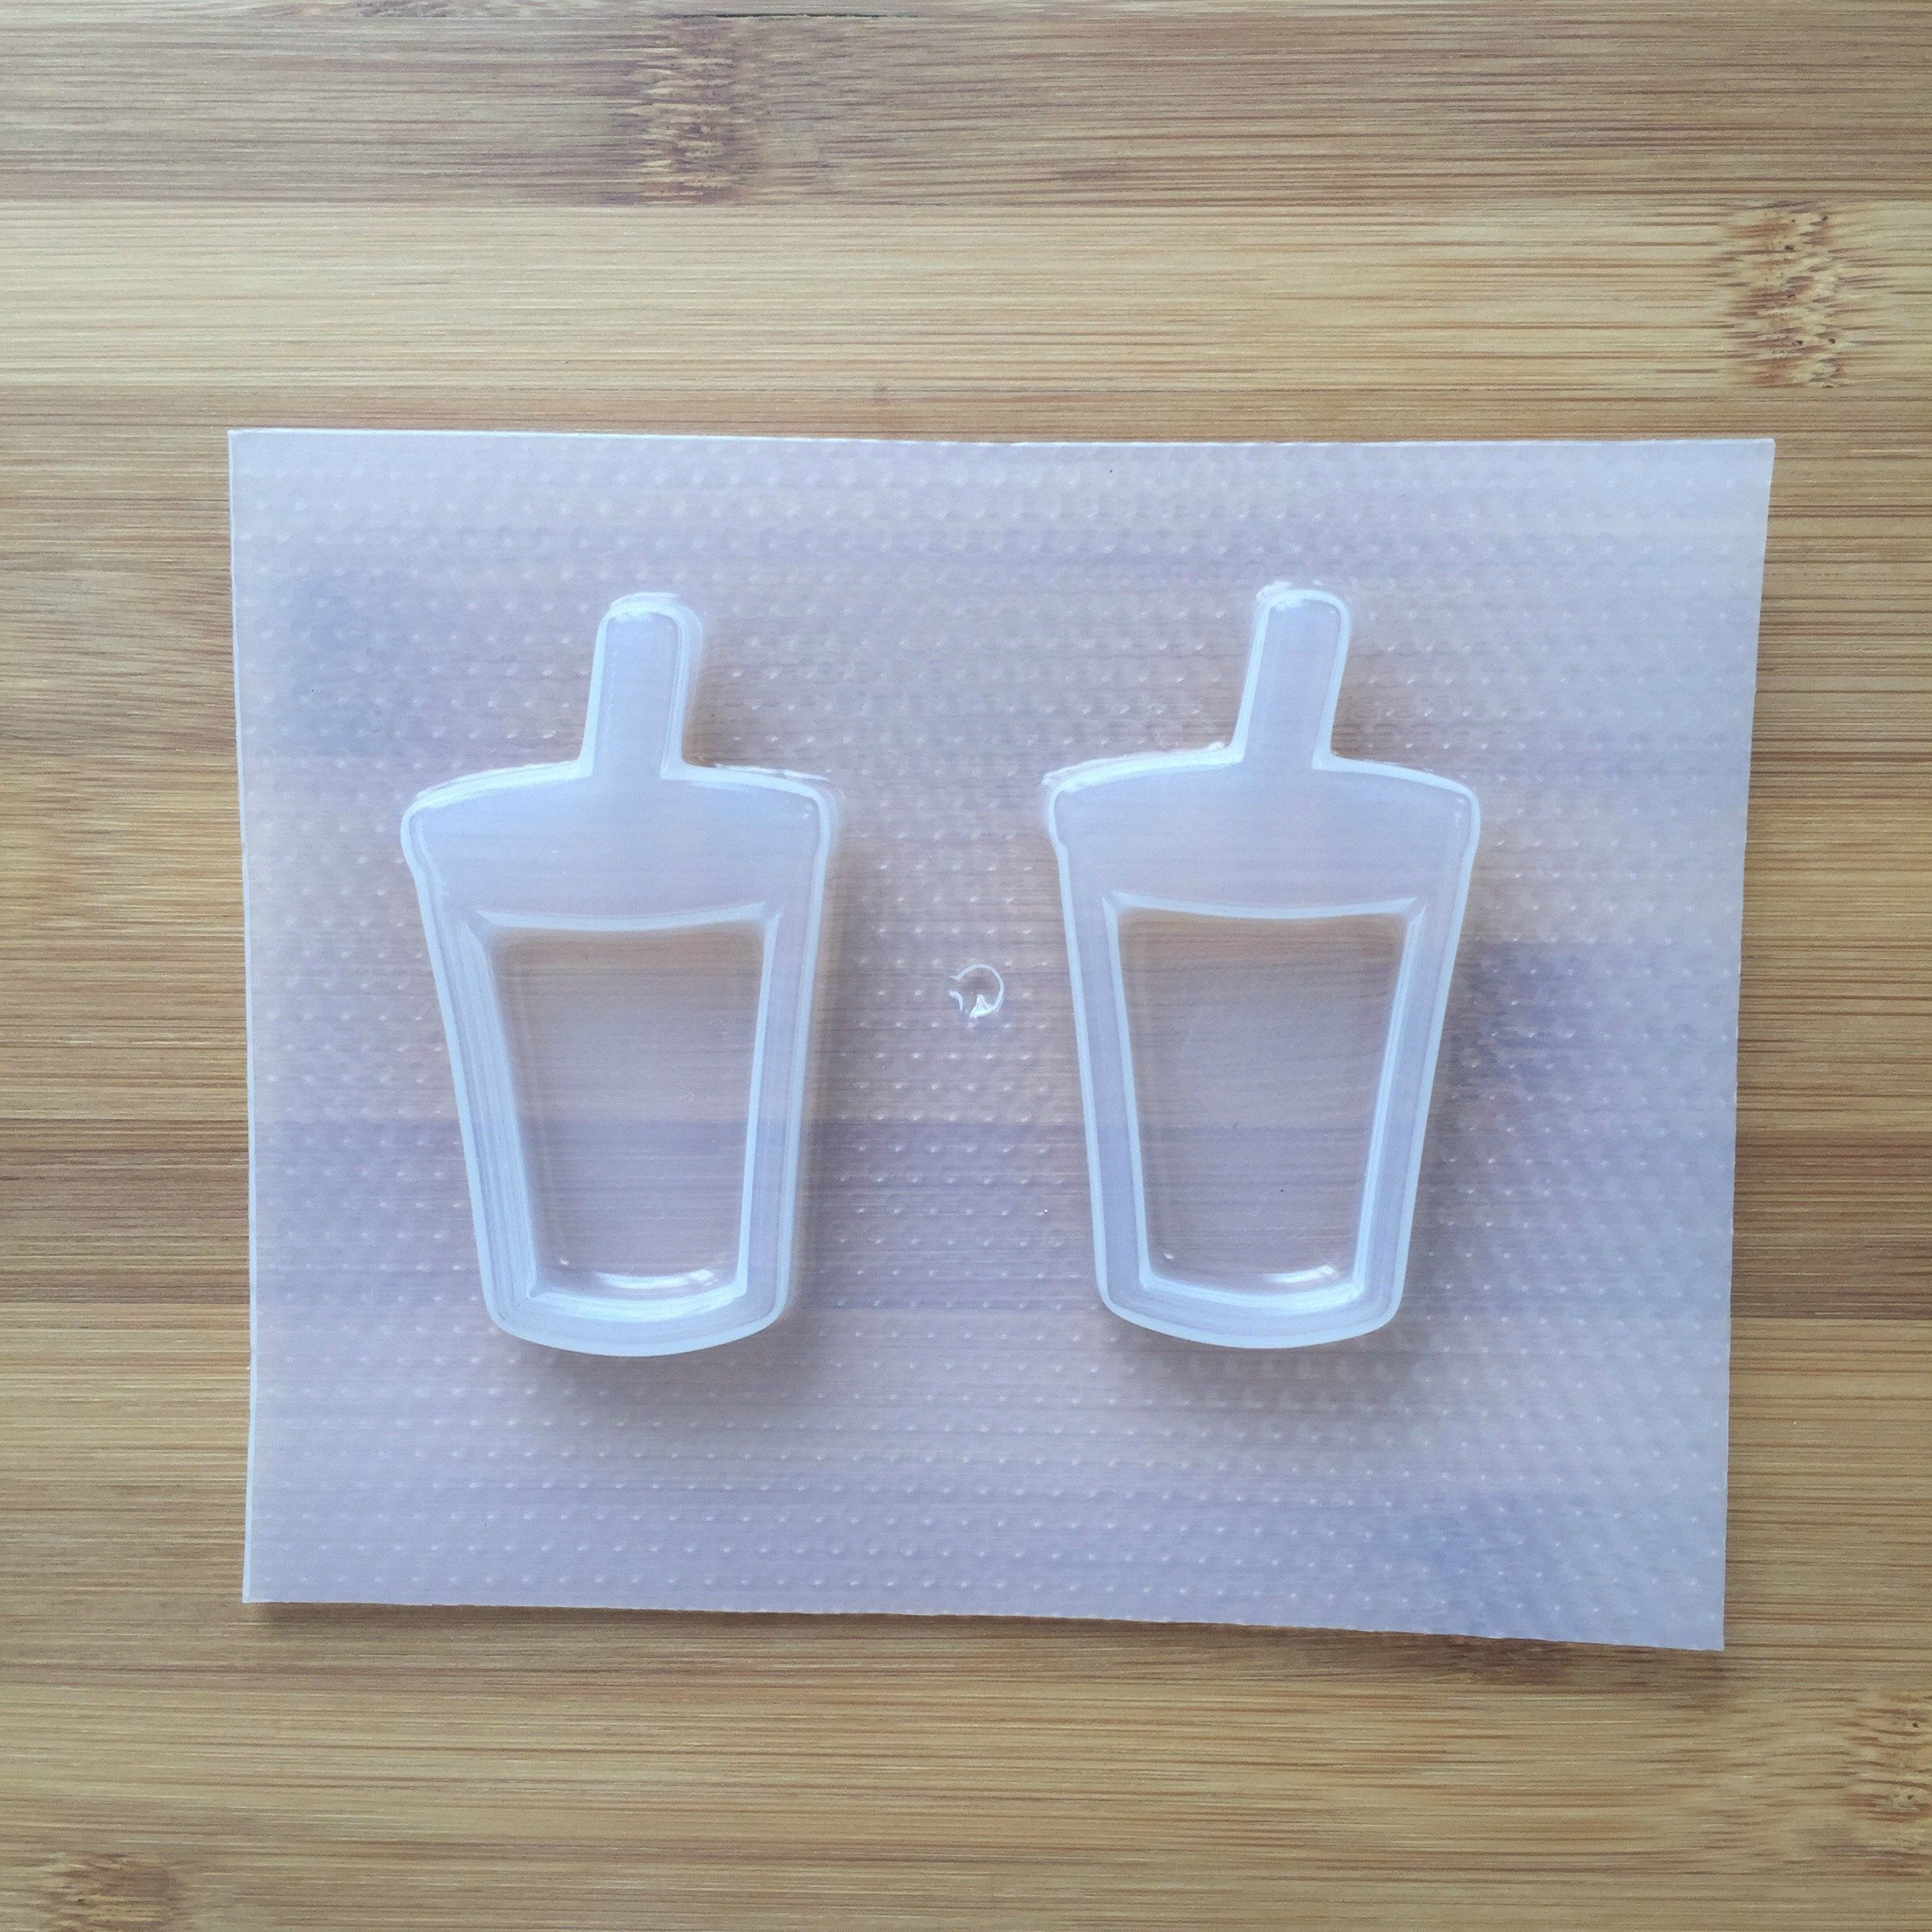 Smoothie Cup Shaker Plastic Mold Plastic Molds Cool Things To Make Crafts To Make